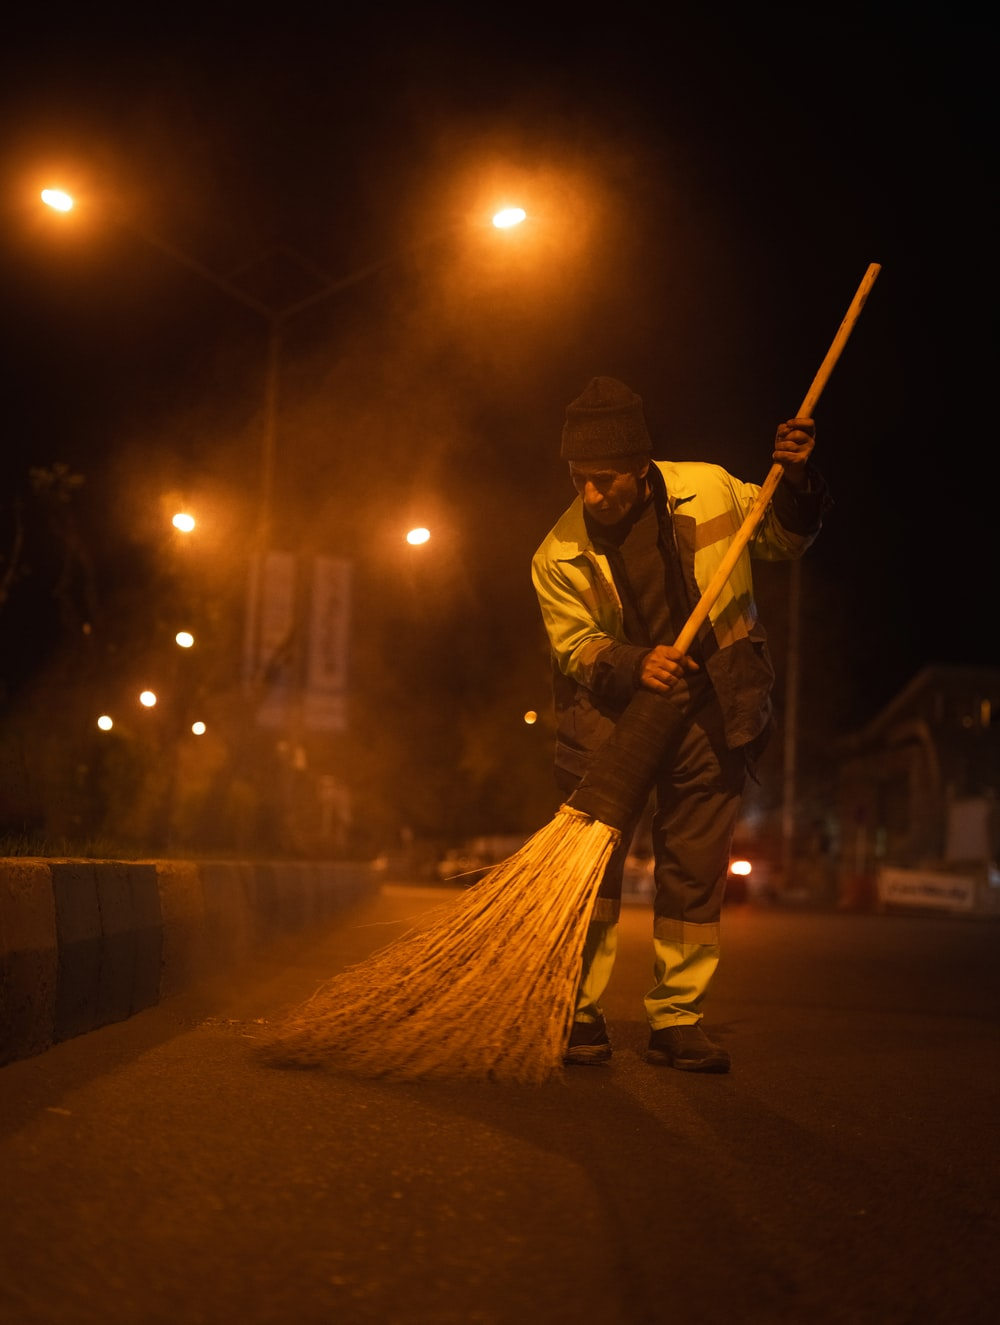 man in yellow jacket holding broom